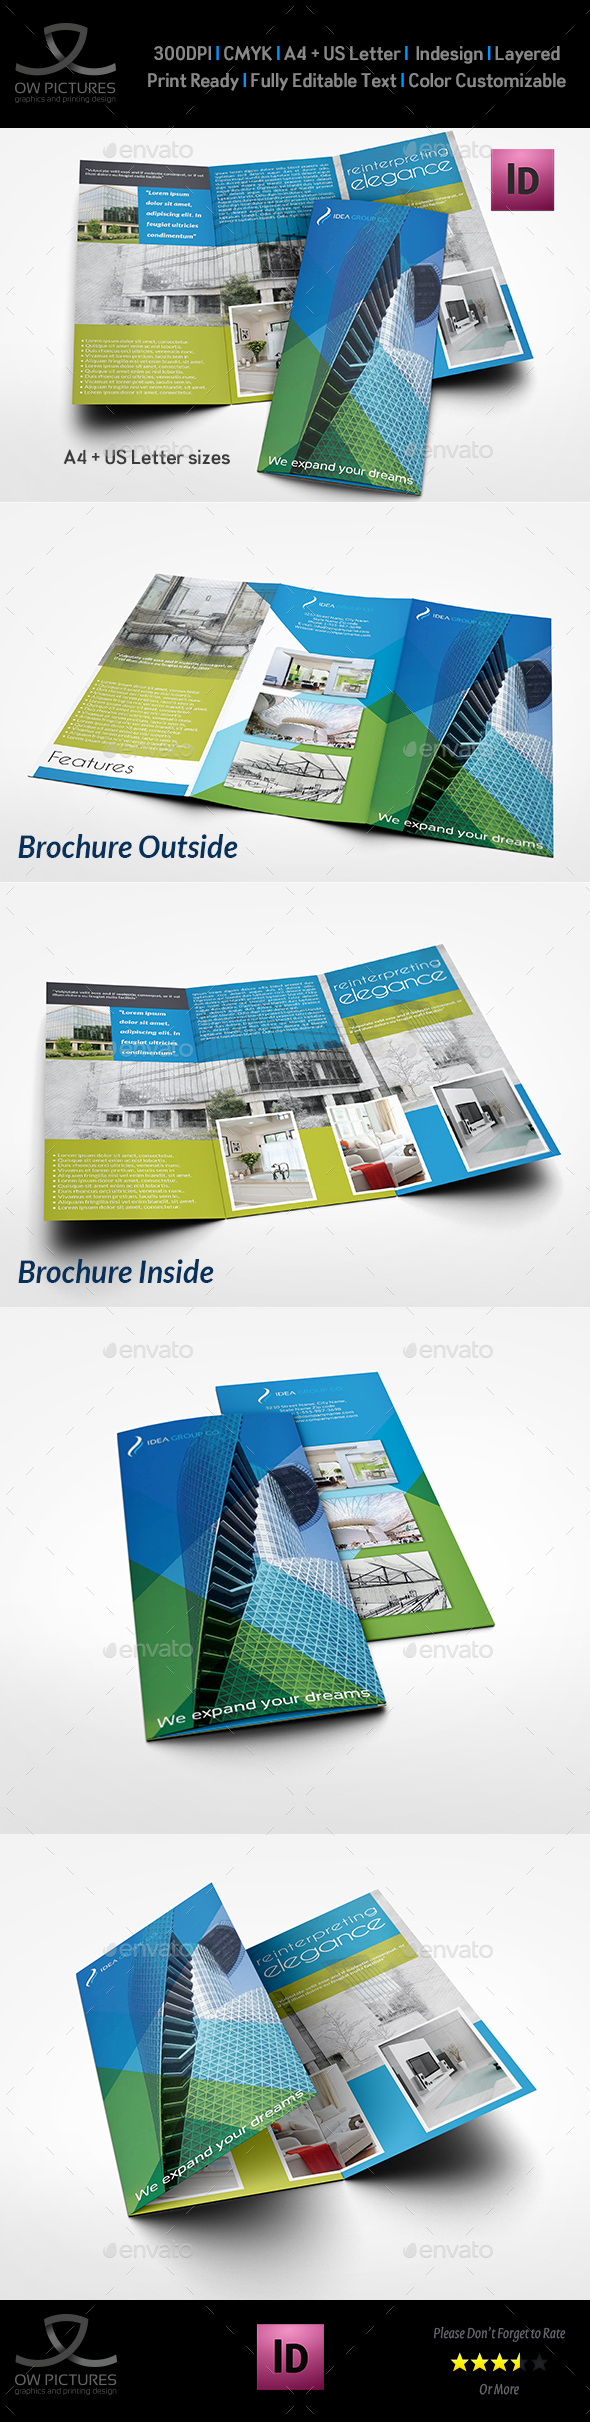 Architectural Design Tri-Fold Brochure Template Vol.2 - Brochures Print Templates